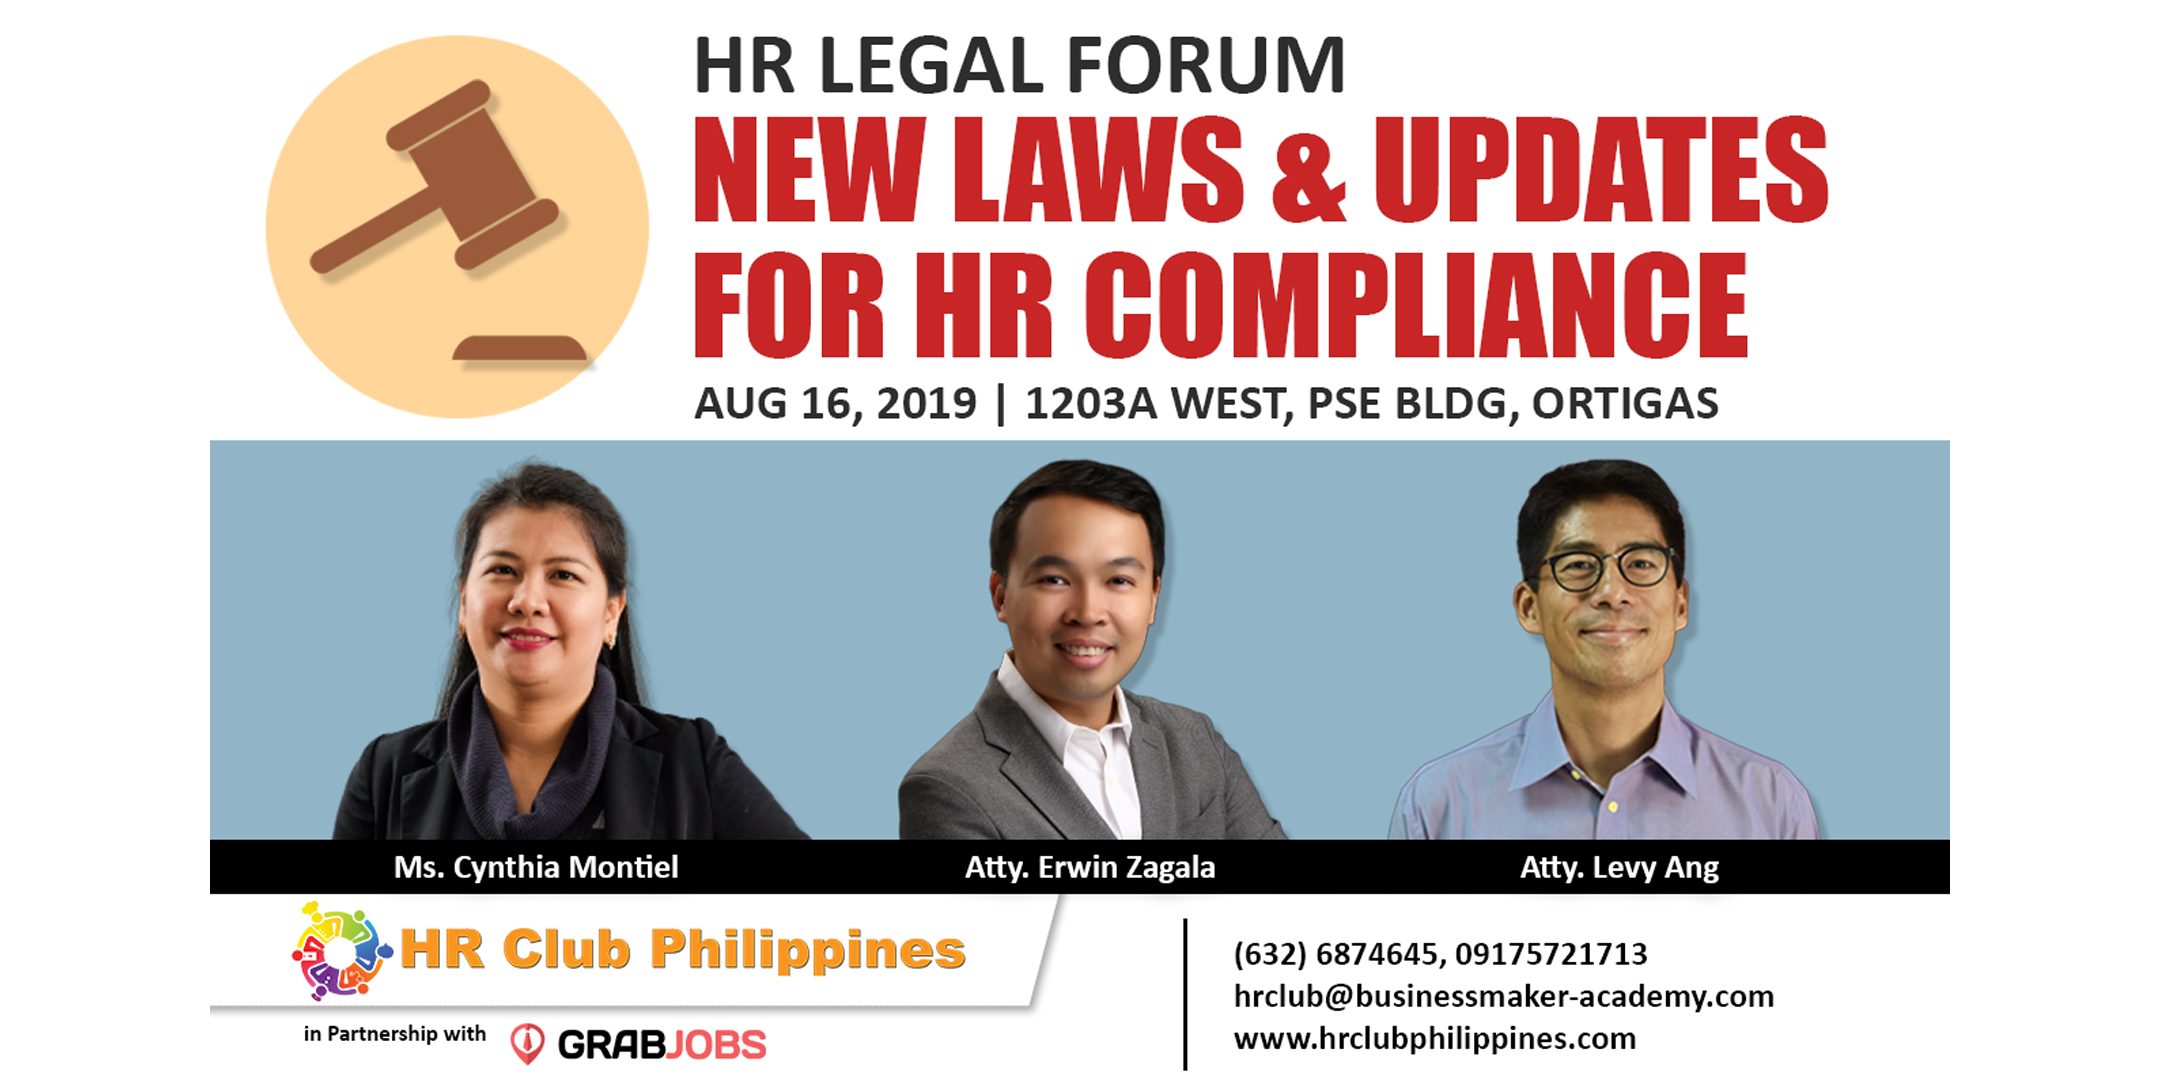 HR Legal Forum